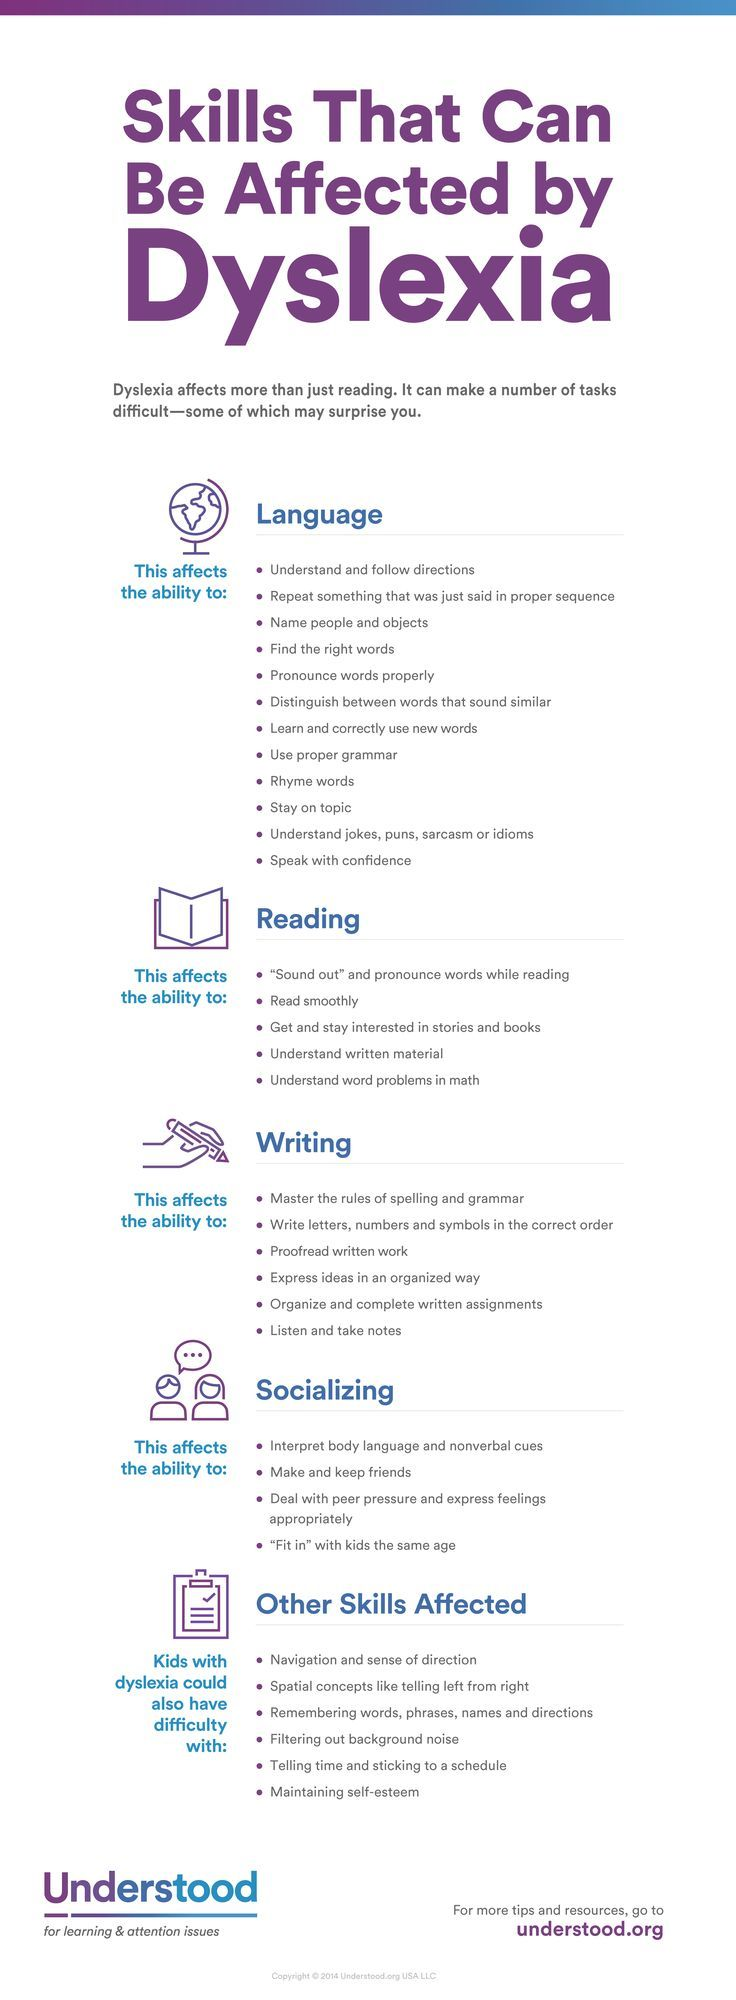 Some people think of dyslexia as a learning issue that only involves reading. But brain differences associated with dyslexia can make a number of tasks difficult. Here's an overview of skills and behaviors dyslexia can affect.